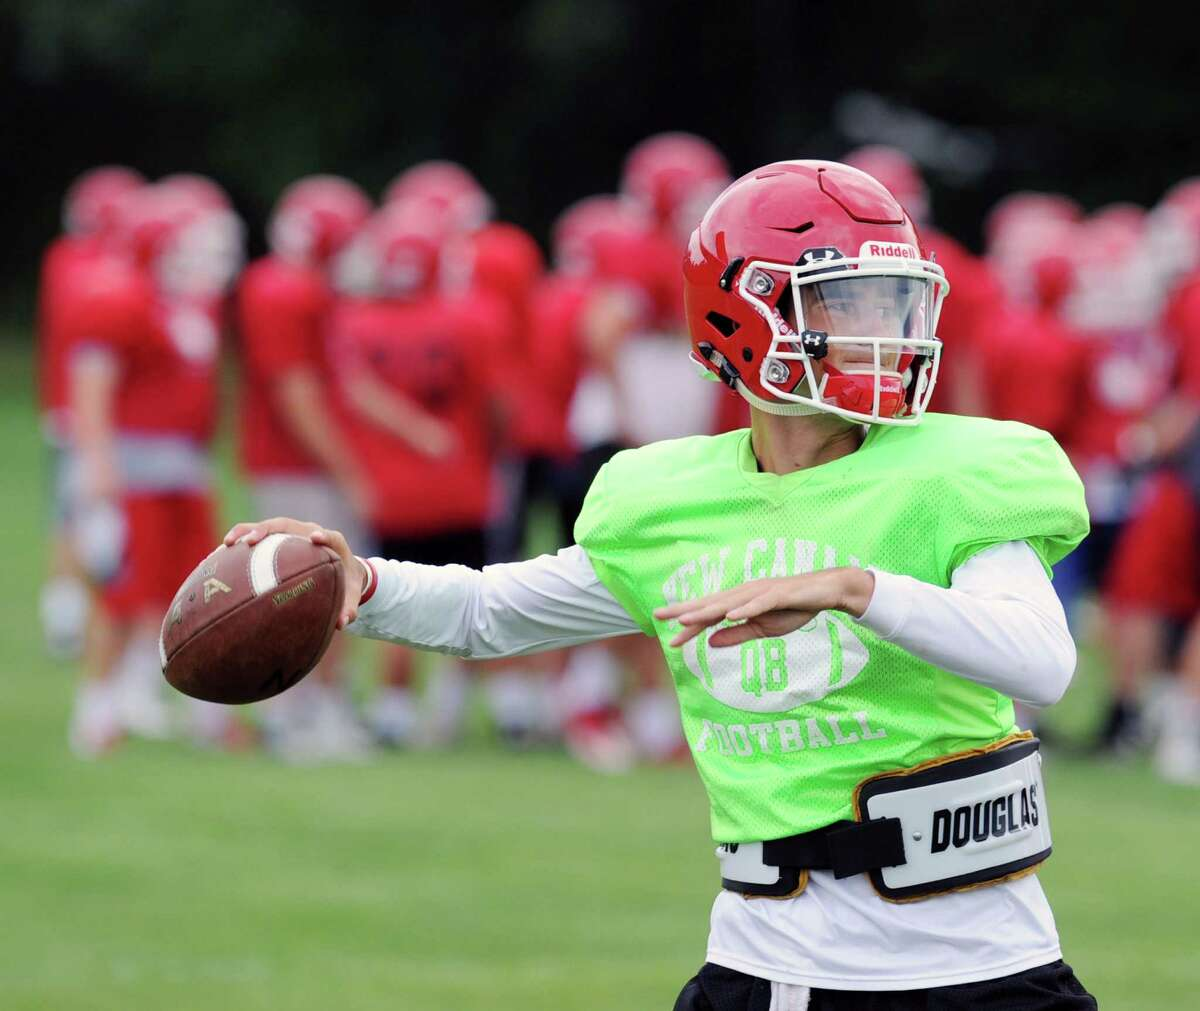 New Canaan High School quarterback Drew Pyne, a freshman, during New Canaan High School football practice at the school in New Canaan, Conn., Thursday, Sept. 1, 2016.